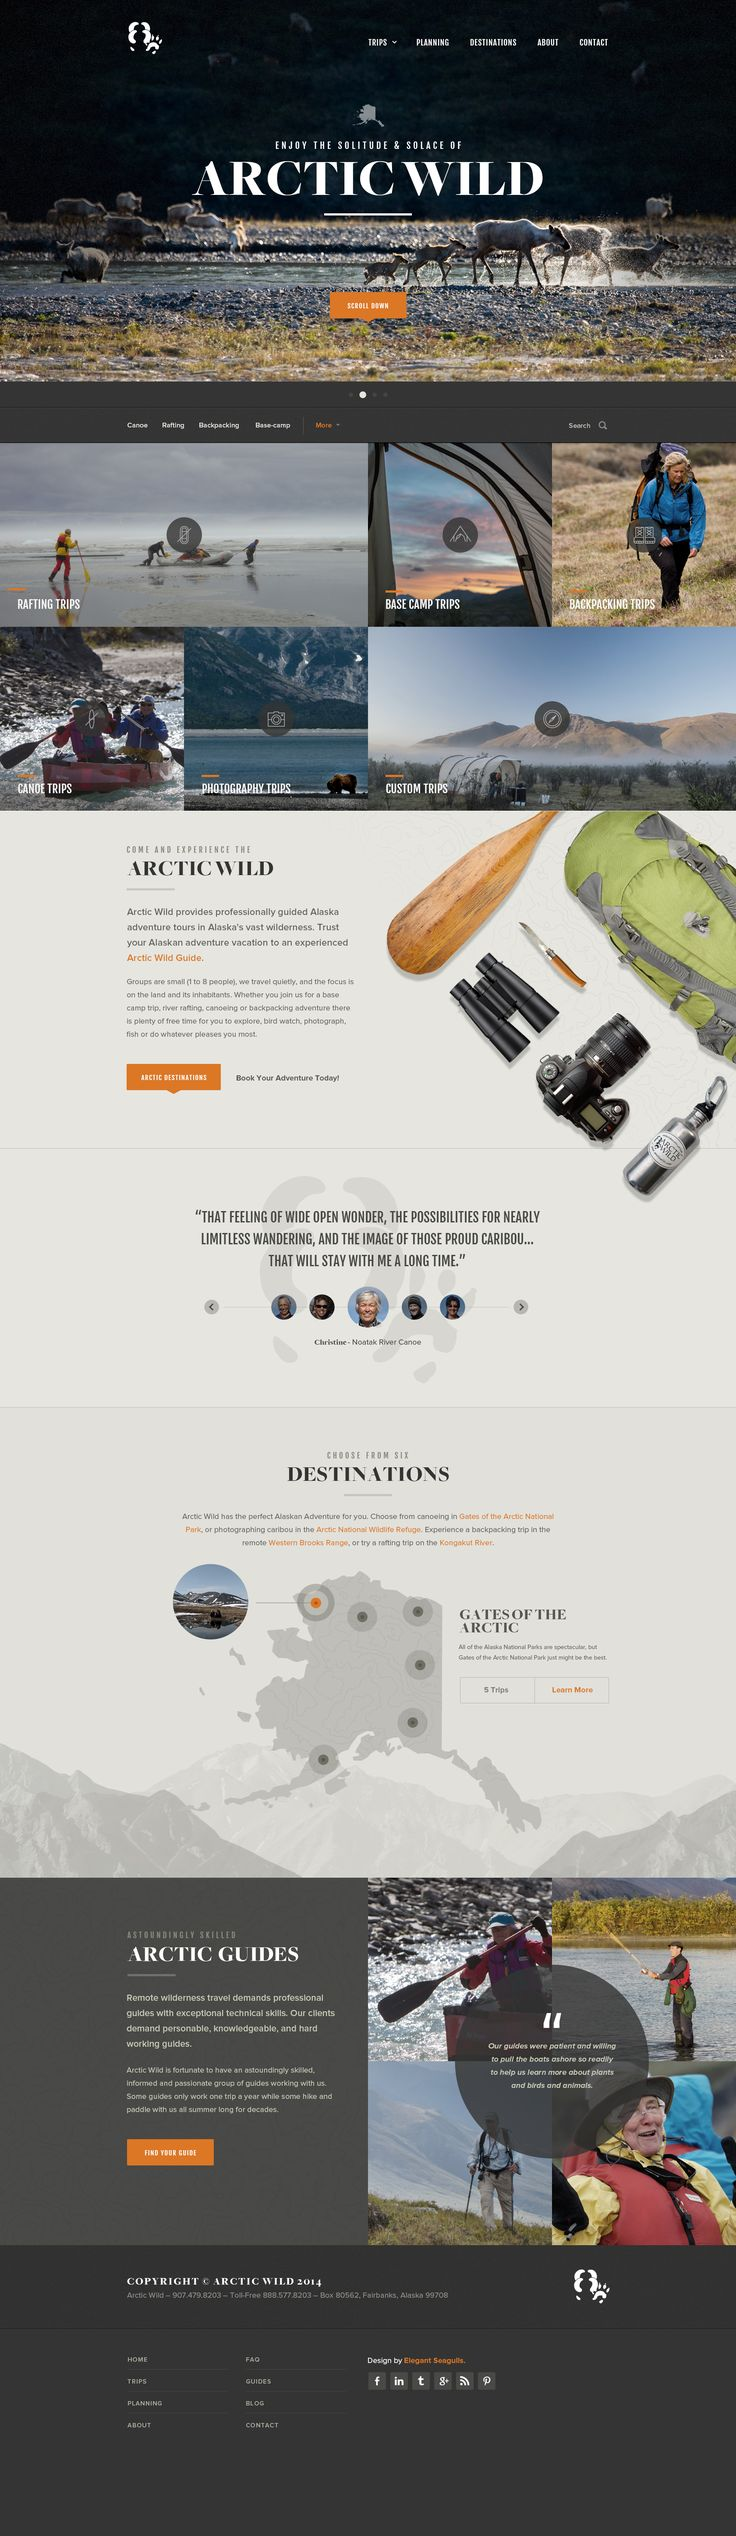 Artic Wild / user interface and website design – now live on http://arcticwild.com – by Elegant Seagulls on dribbble.